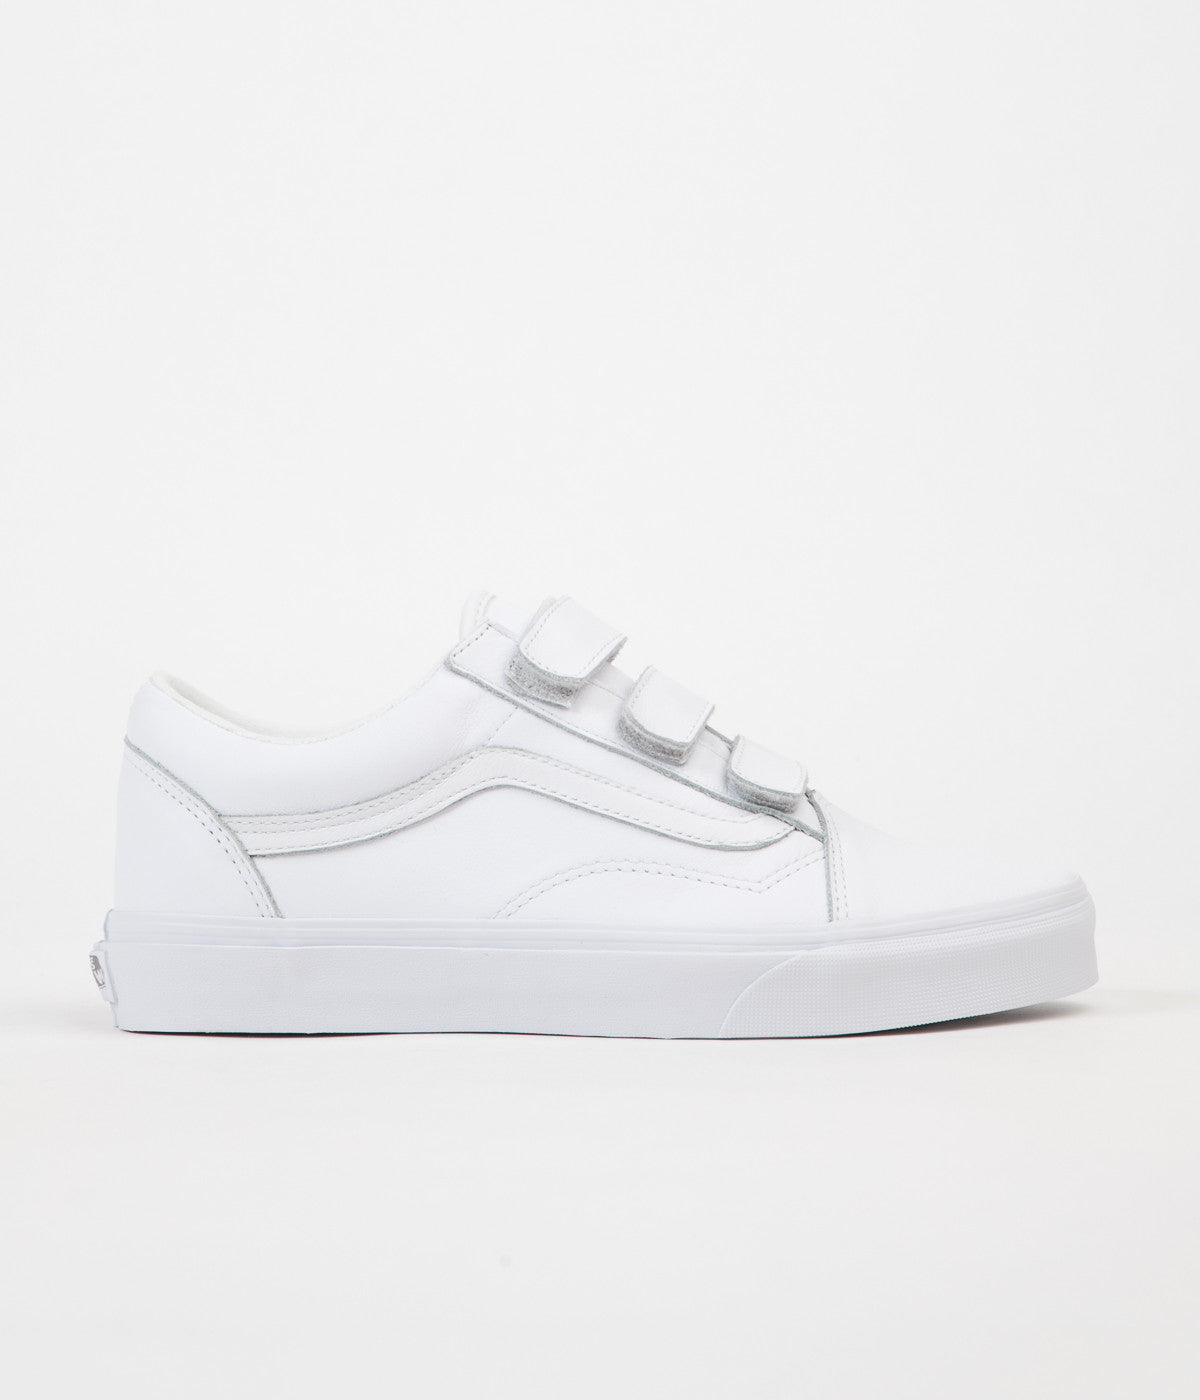 Vans Old Skool V Mono Leather Shoes - True White